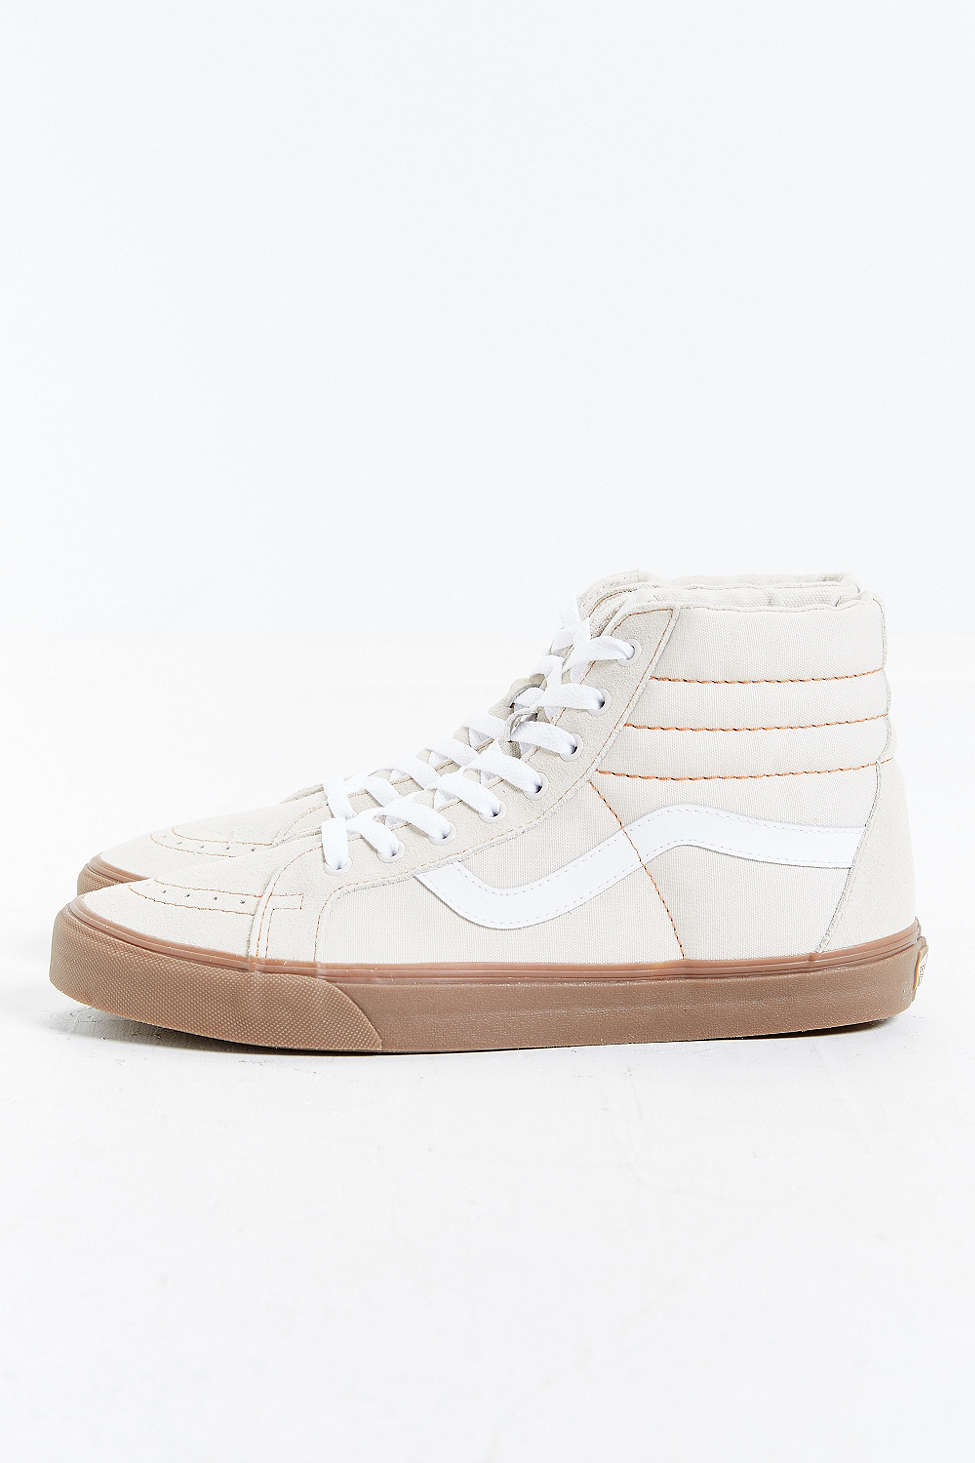 Urban Outfitters x Vans Sk8 Hi Reissue